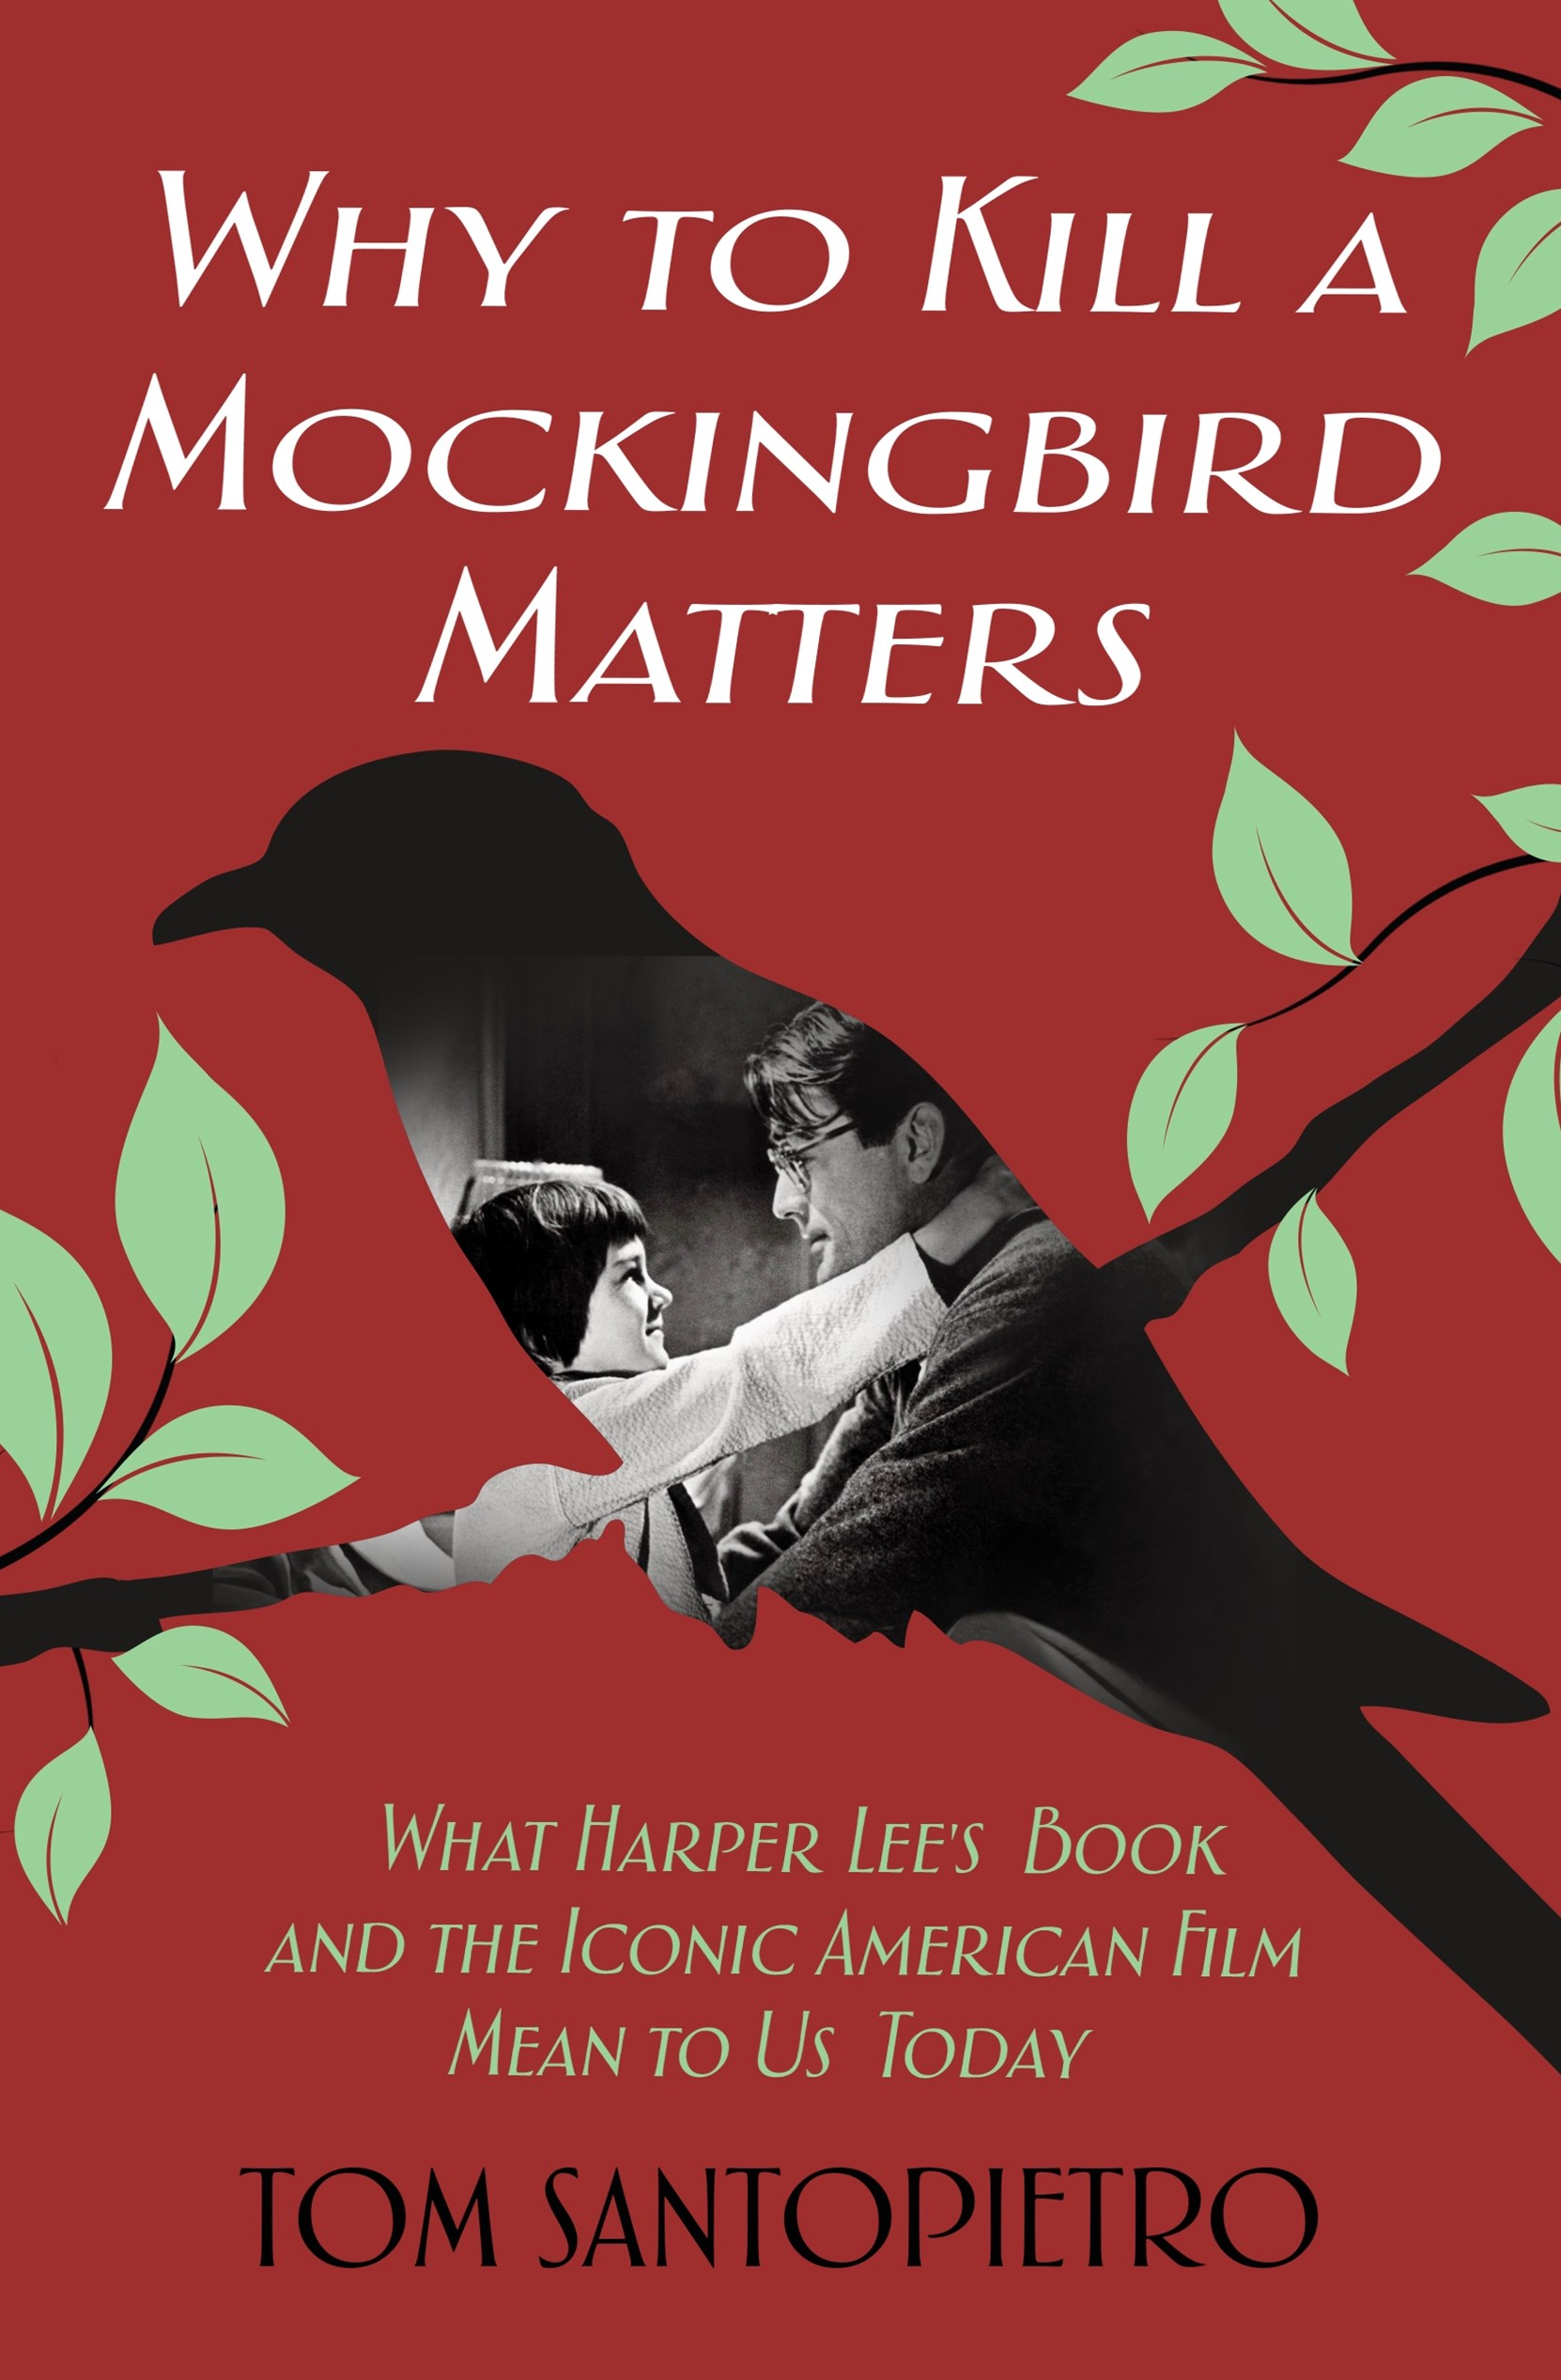 Why To Kill a Mockingbird Matters: What Harper Lee's Book and the